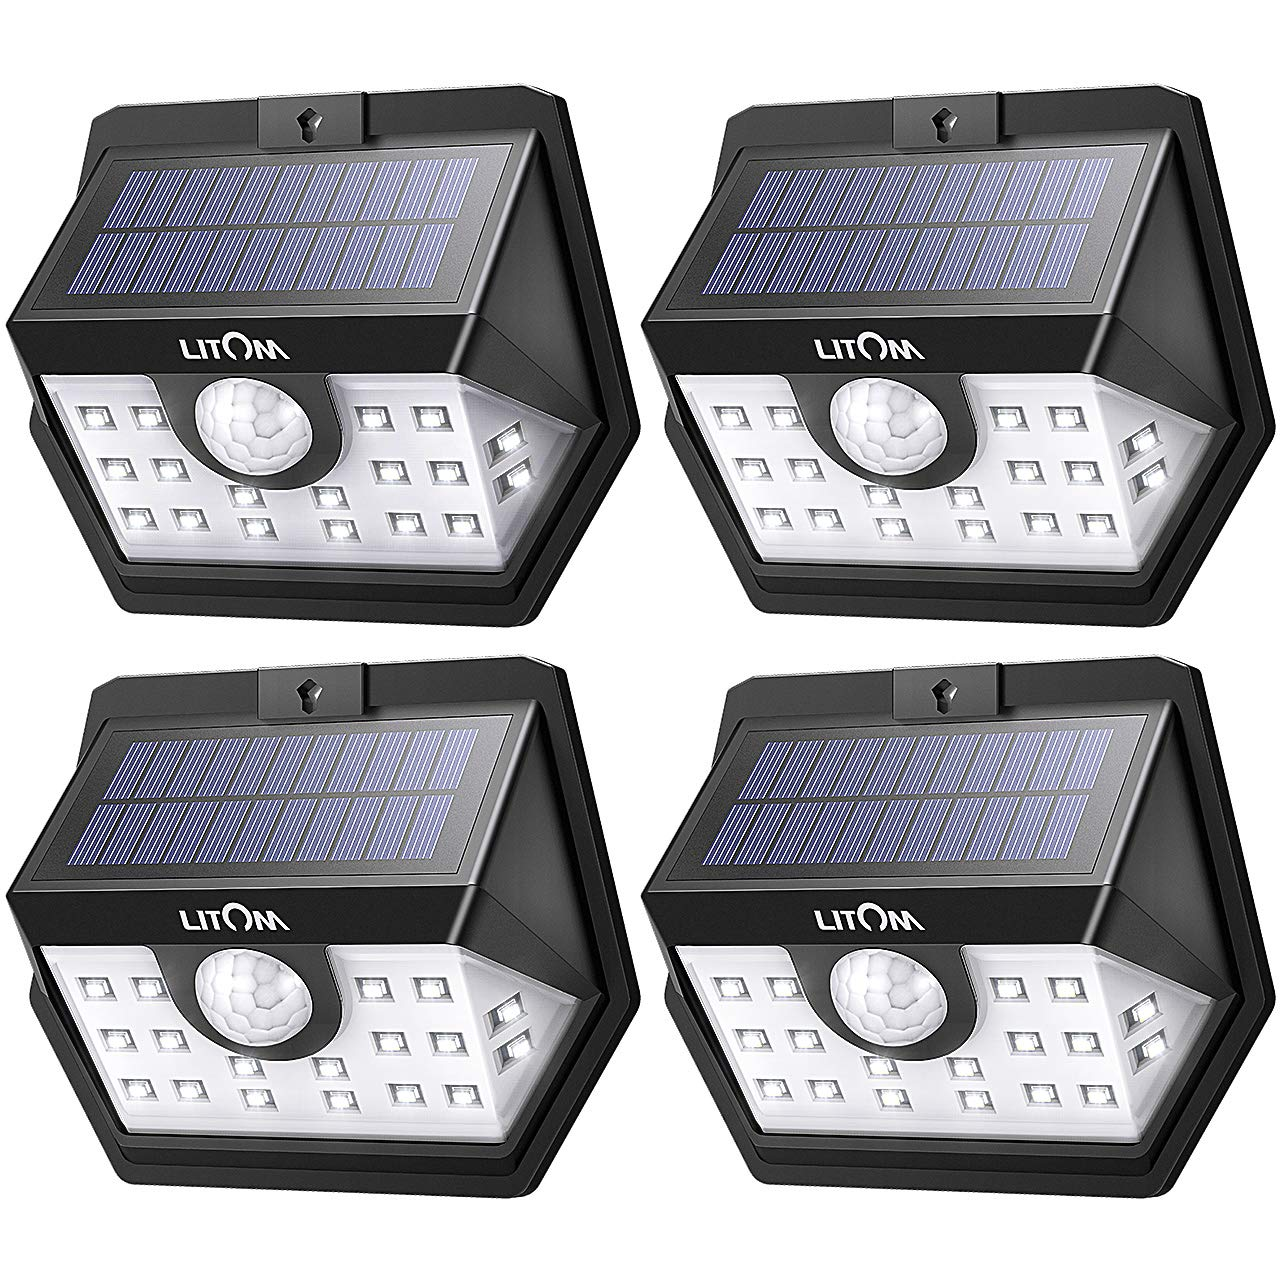 LITOM Basics Solar Lights Outdoor, Wireless Solar Motion Sensor Lights(White Light), 270° Wide Angle, IP65 Waterproof, Easy-to-install Security Lights for Front Door, Yard, Garage, Deck, Porch-4 Pack